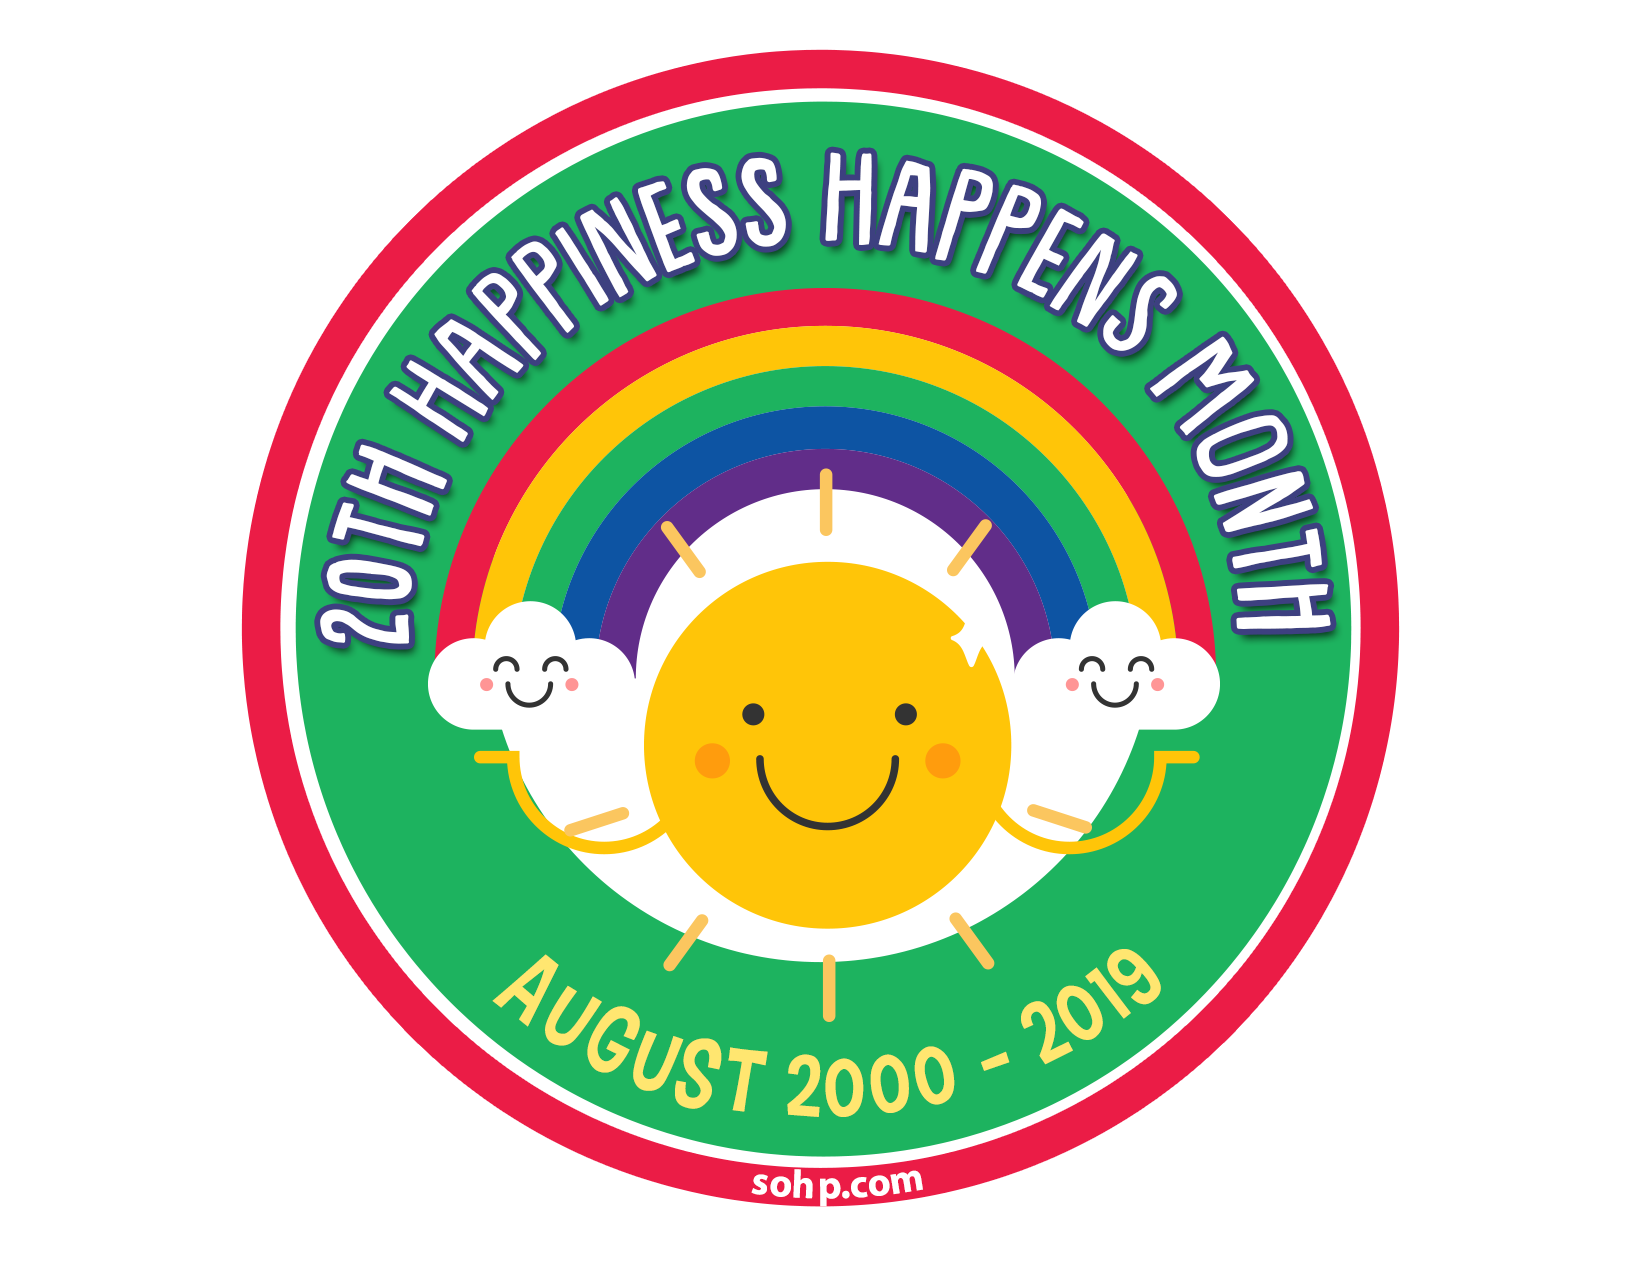 Happiness Happens Month Logo, featuring a smiling cartoon sun and smiling cartoon clouds